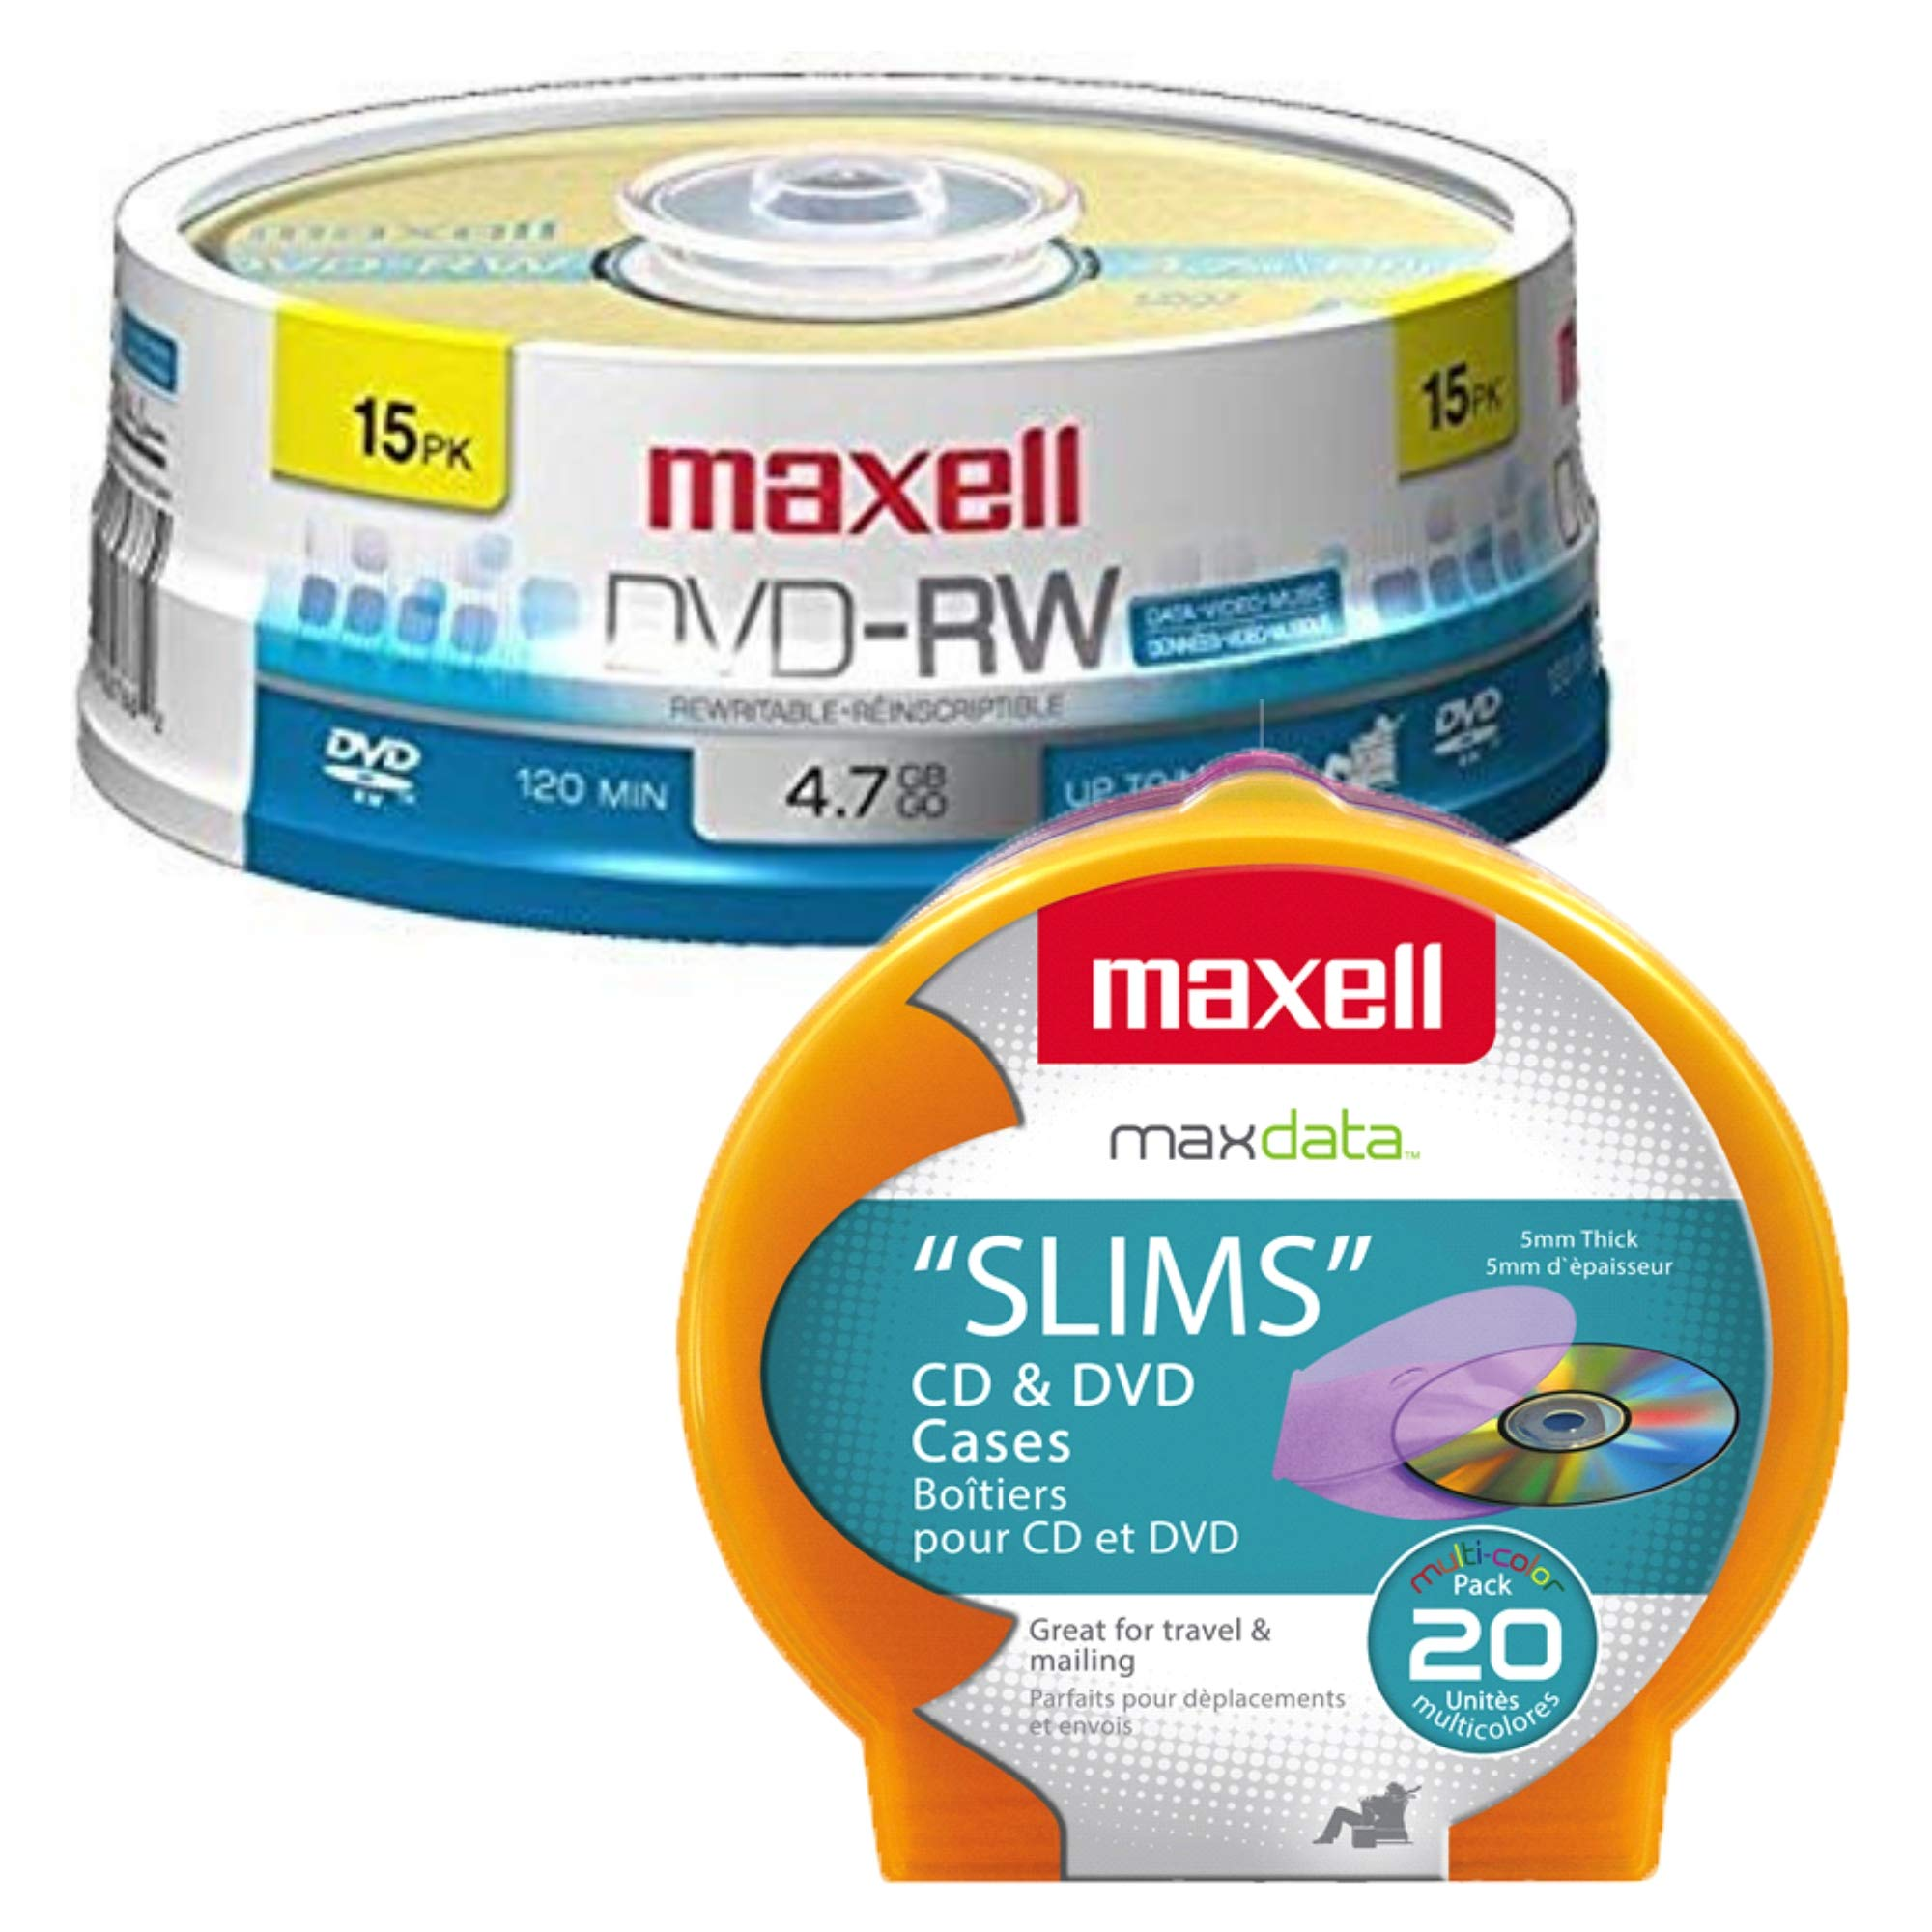 Maxell 4.7Gb DVD-RW 15 Pack Blank Discs and Maxell Disc Cases 20 Pack Assorted Colors Bundle